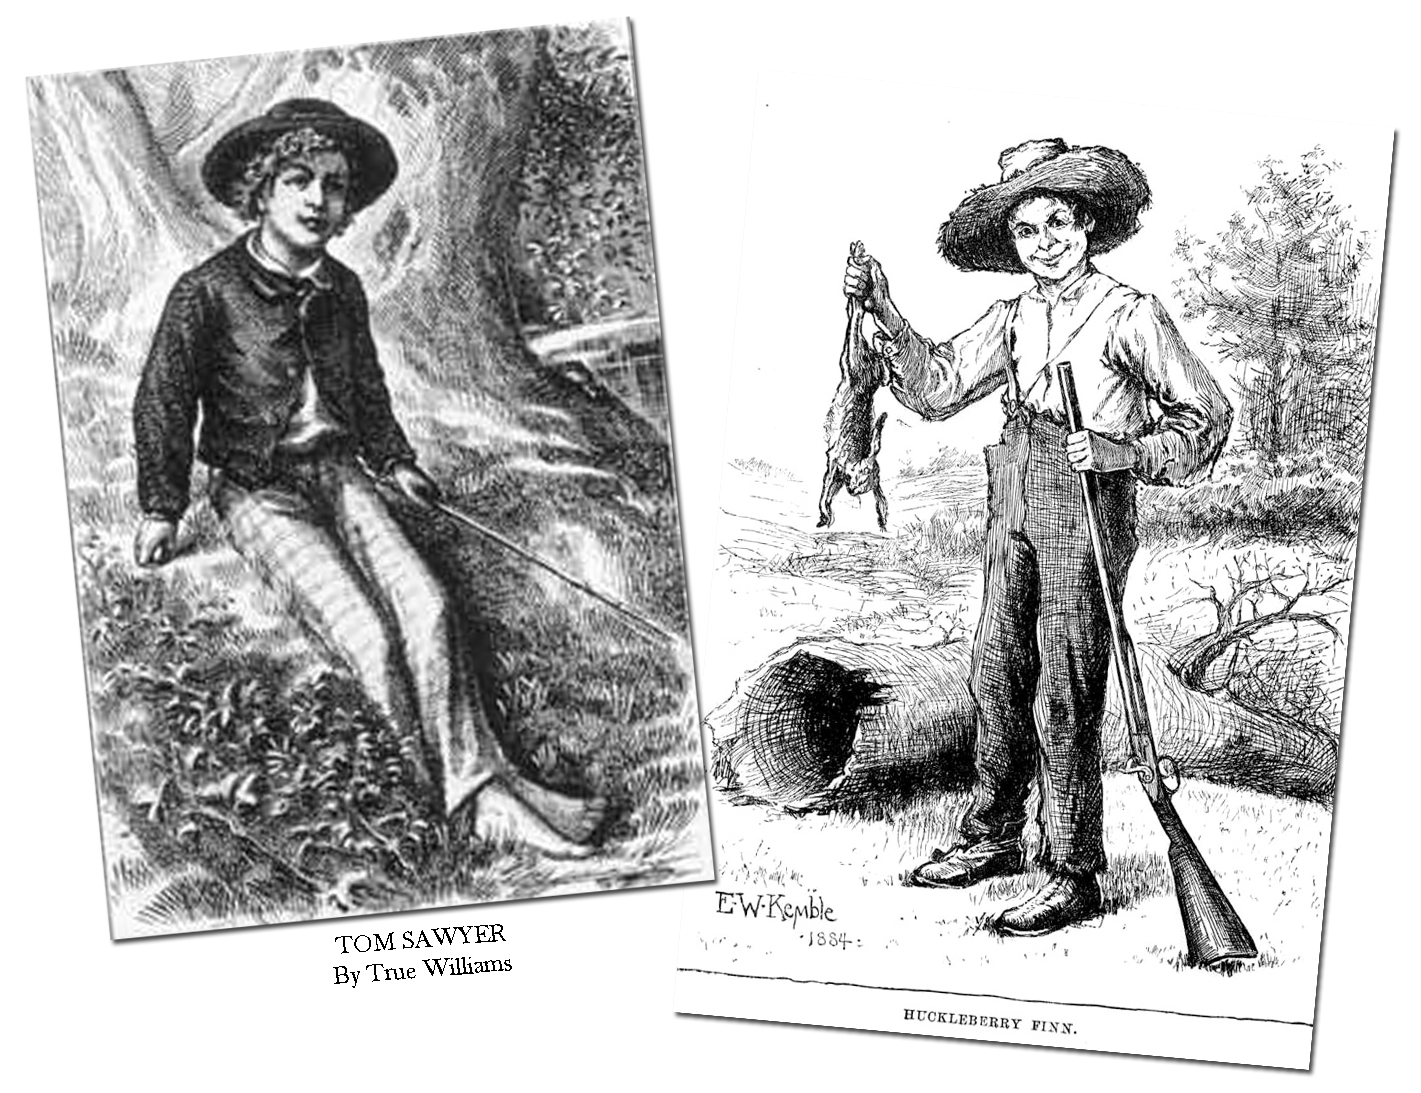 a review of the writing style in adventures of huckleberry finn by mark twain Mickey rooney as huckleberry finn in the 1939 film version of mark twain's classic story photograph: everett collection/rex features but when, after a troubled hiatus, he returned to complete the.